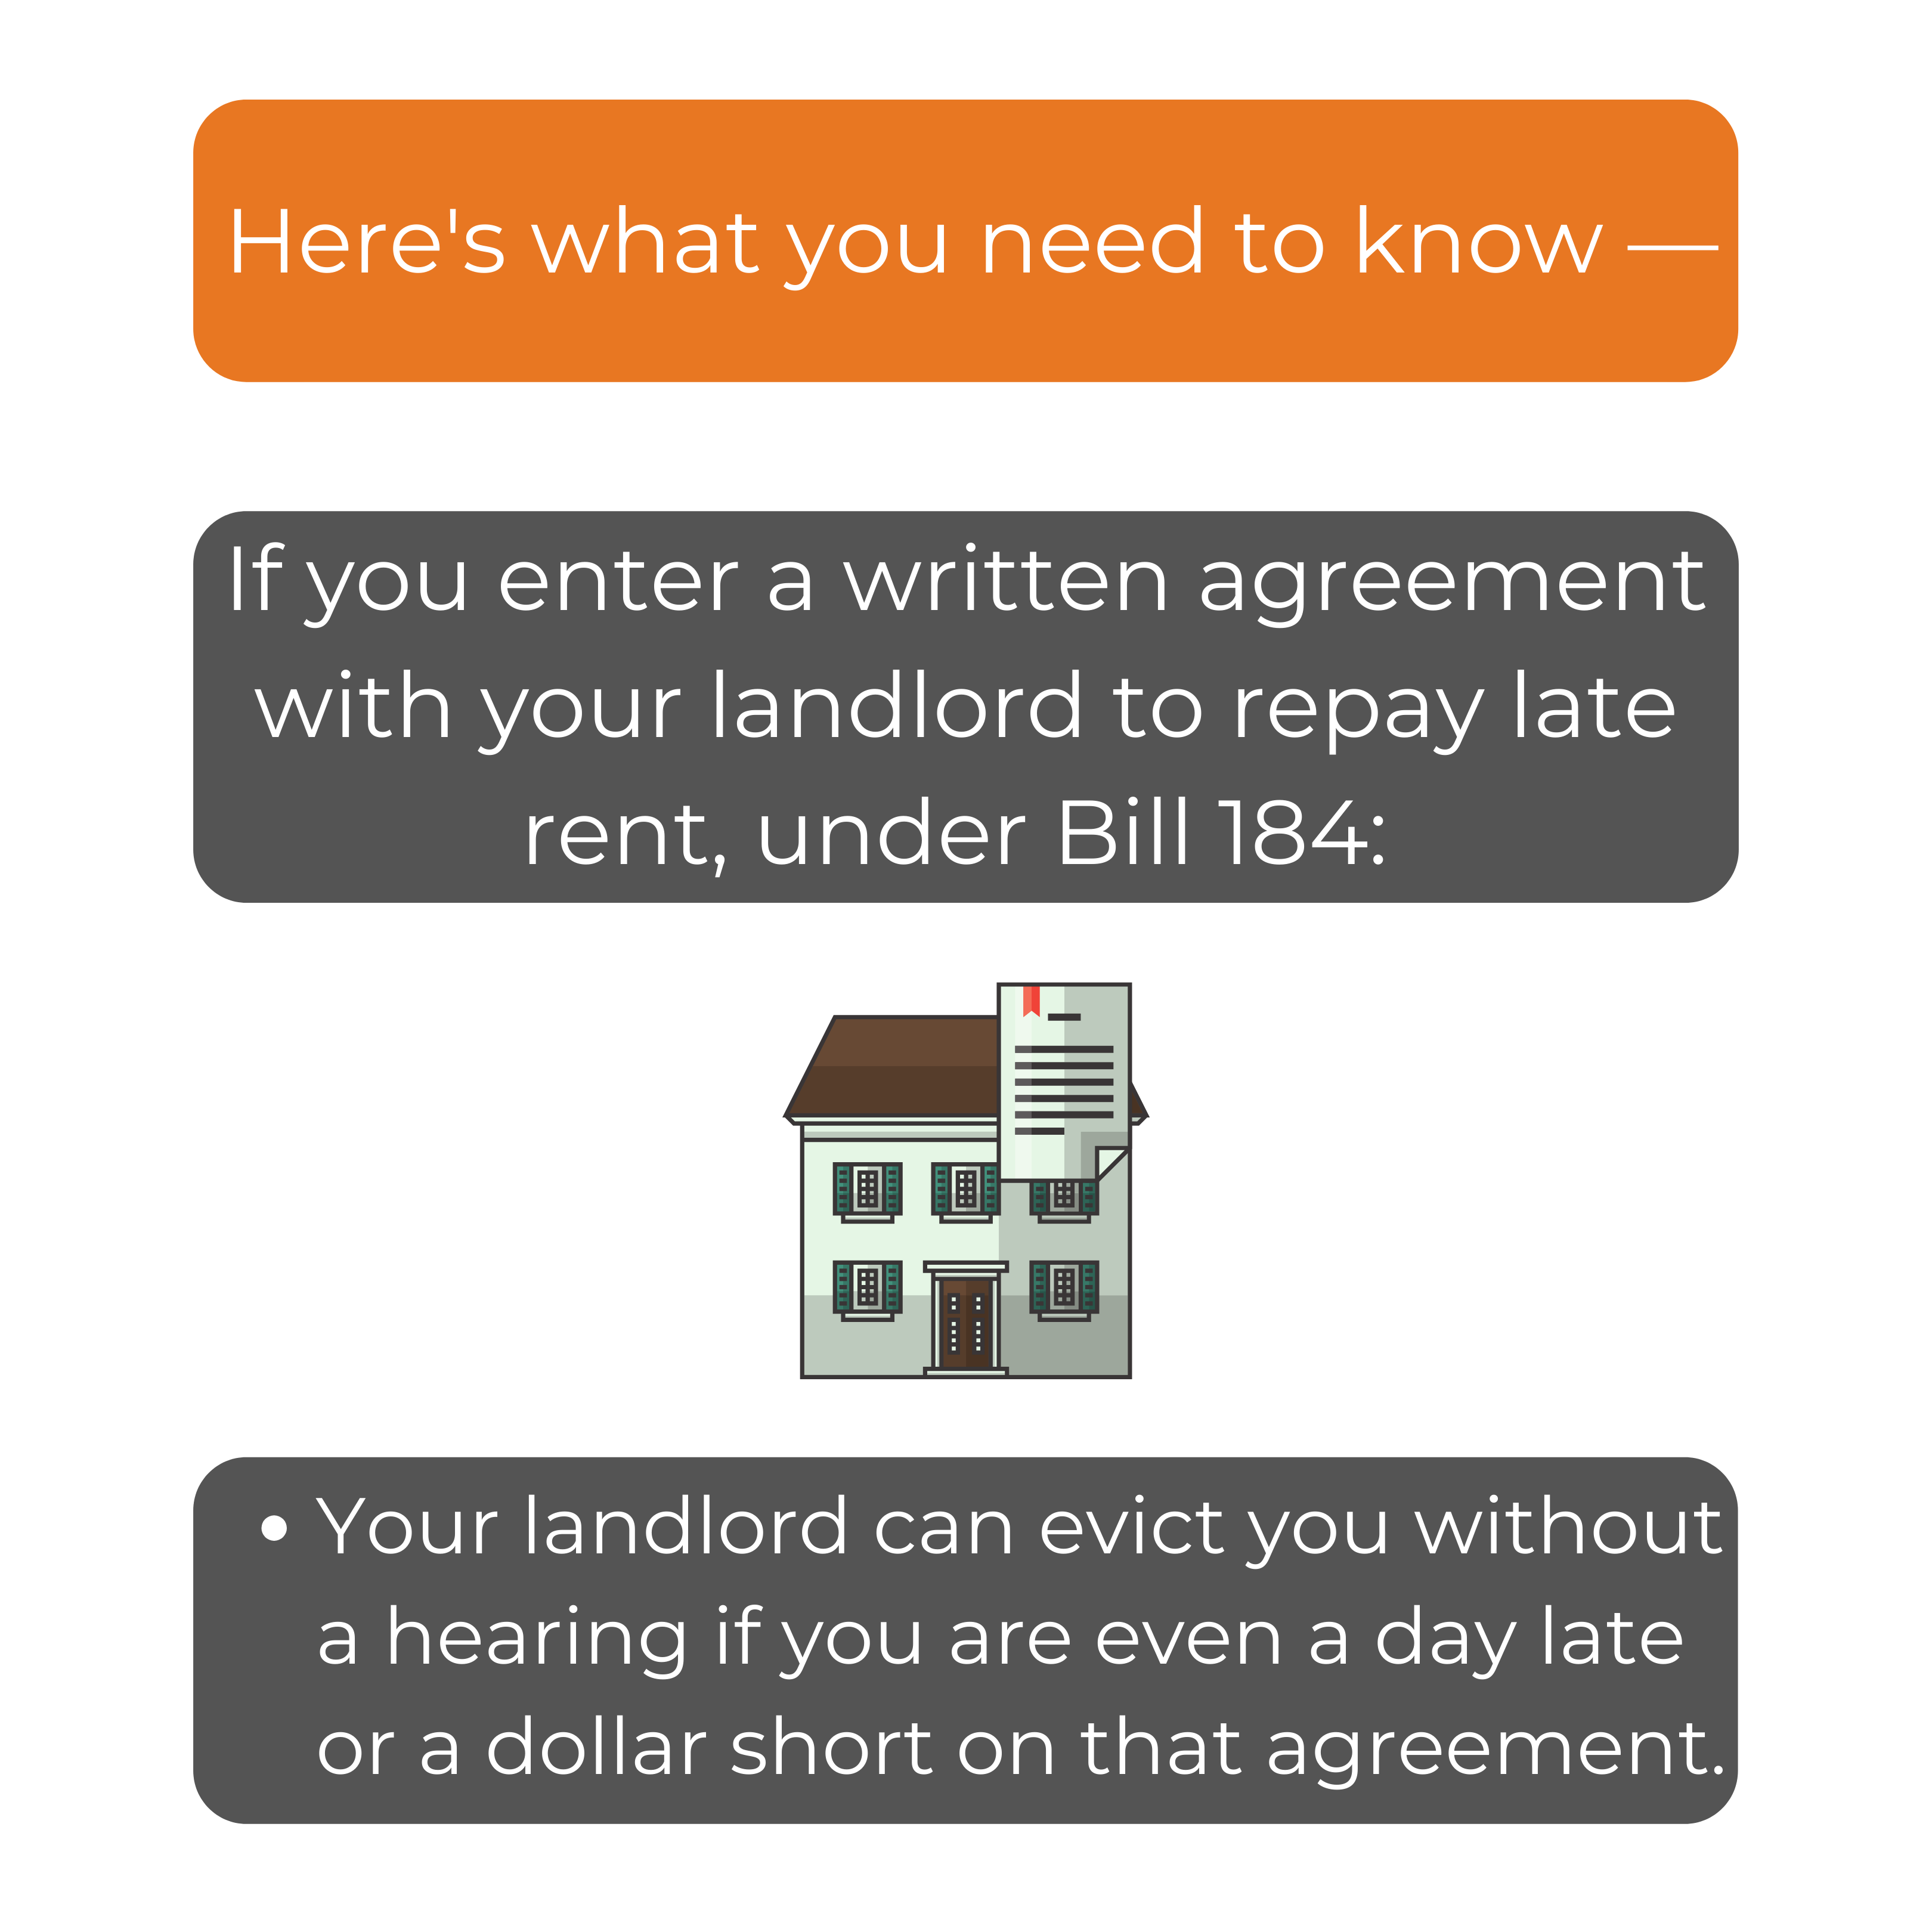 Here's what you need to know — If you enter a written agreement with your landlord to repay late rent, under Bill 184: Your landlordcan evict you without a hearingif you are even a day late or a dollar short on that agreement.